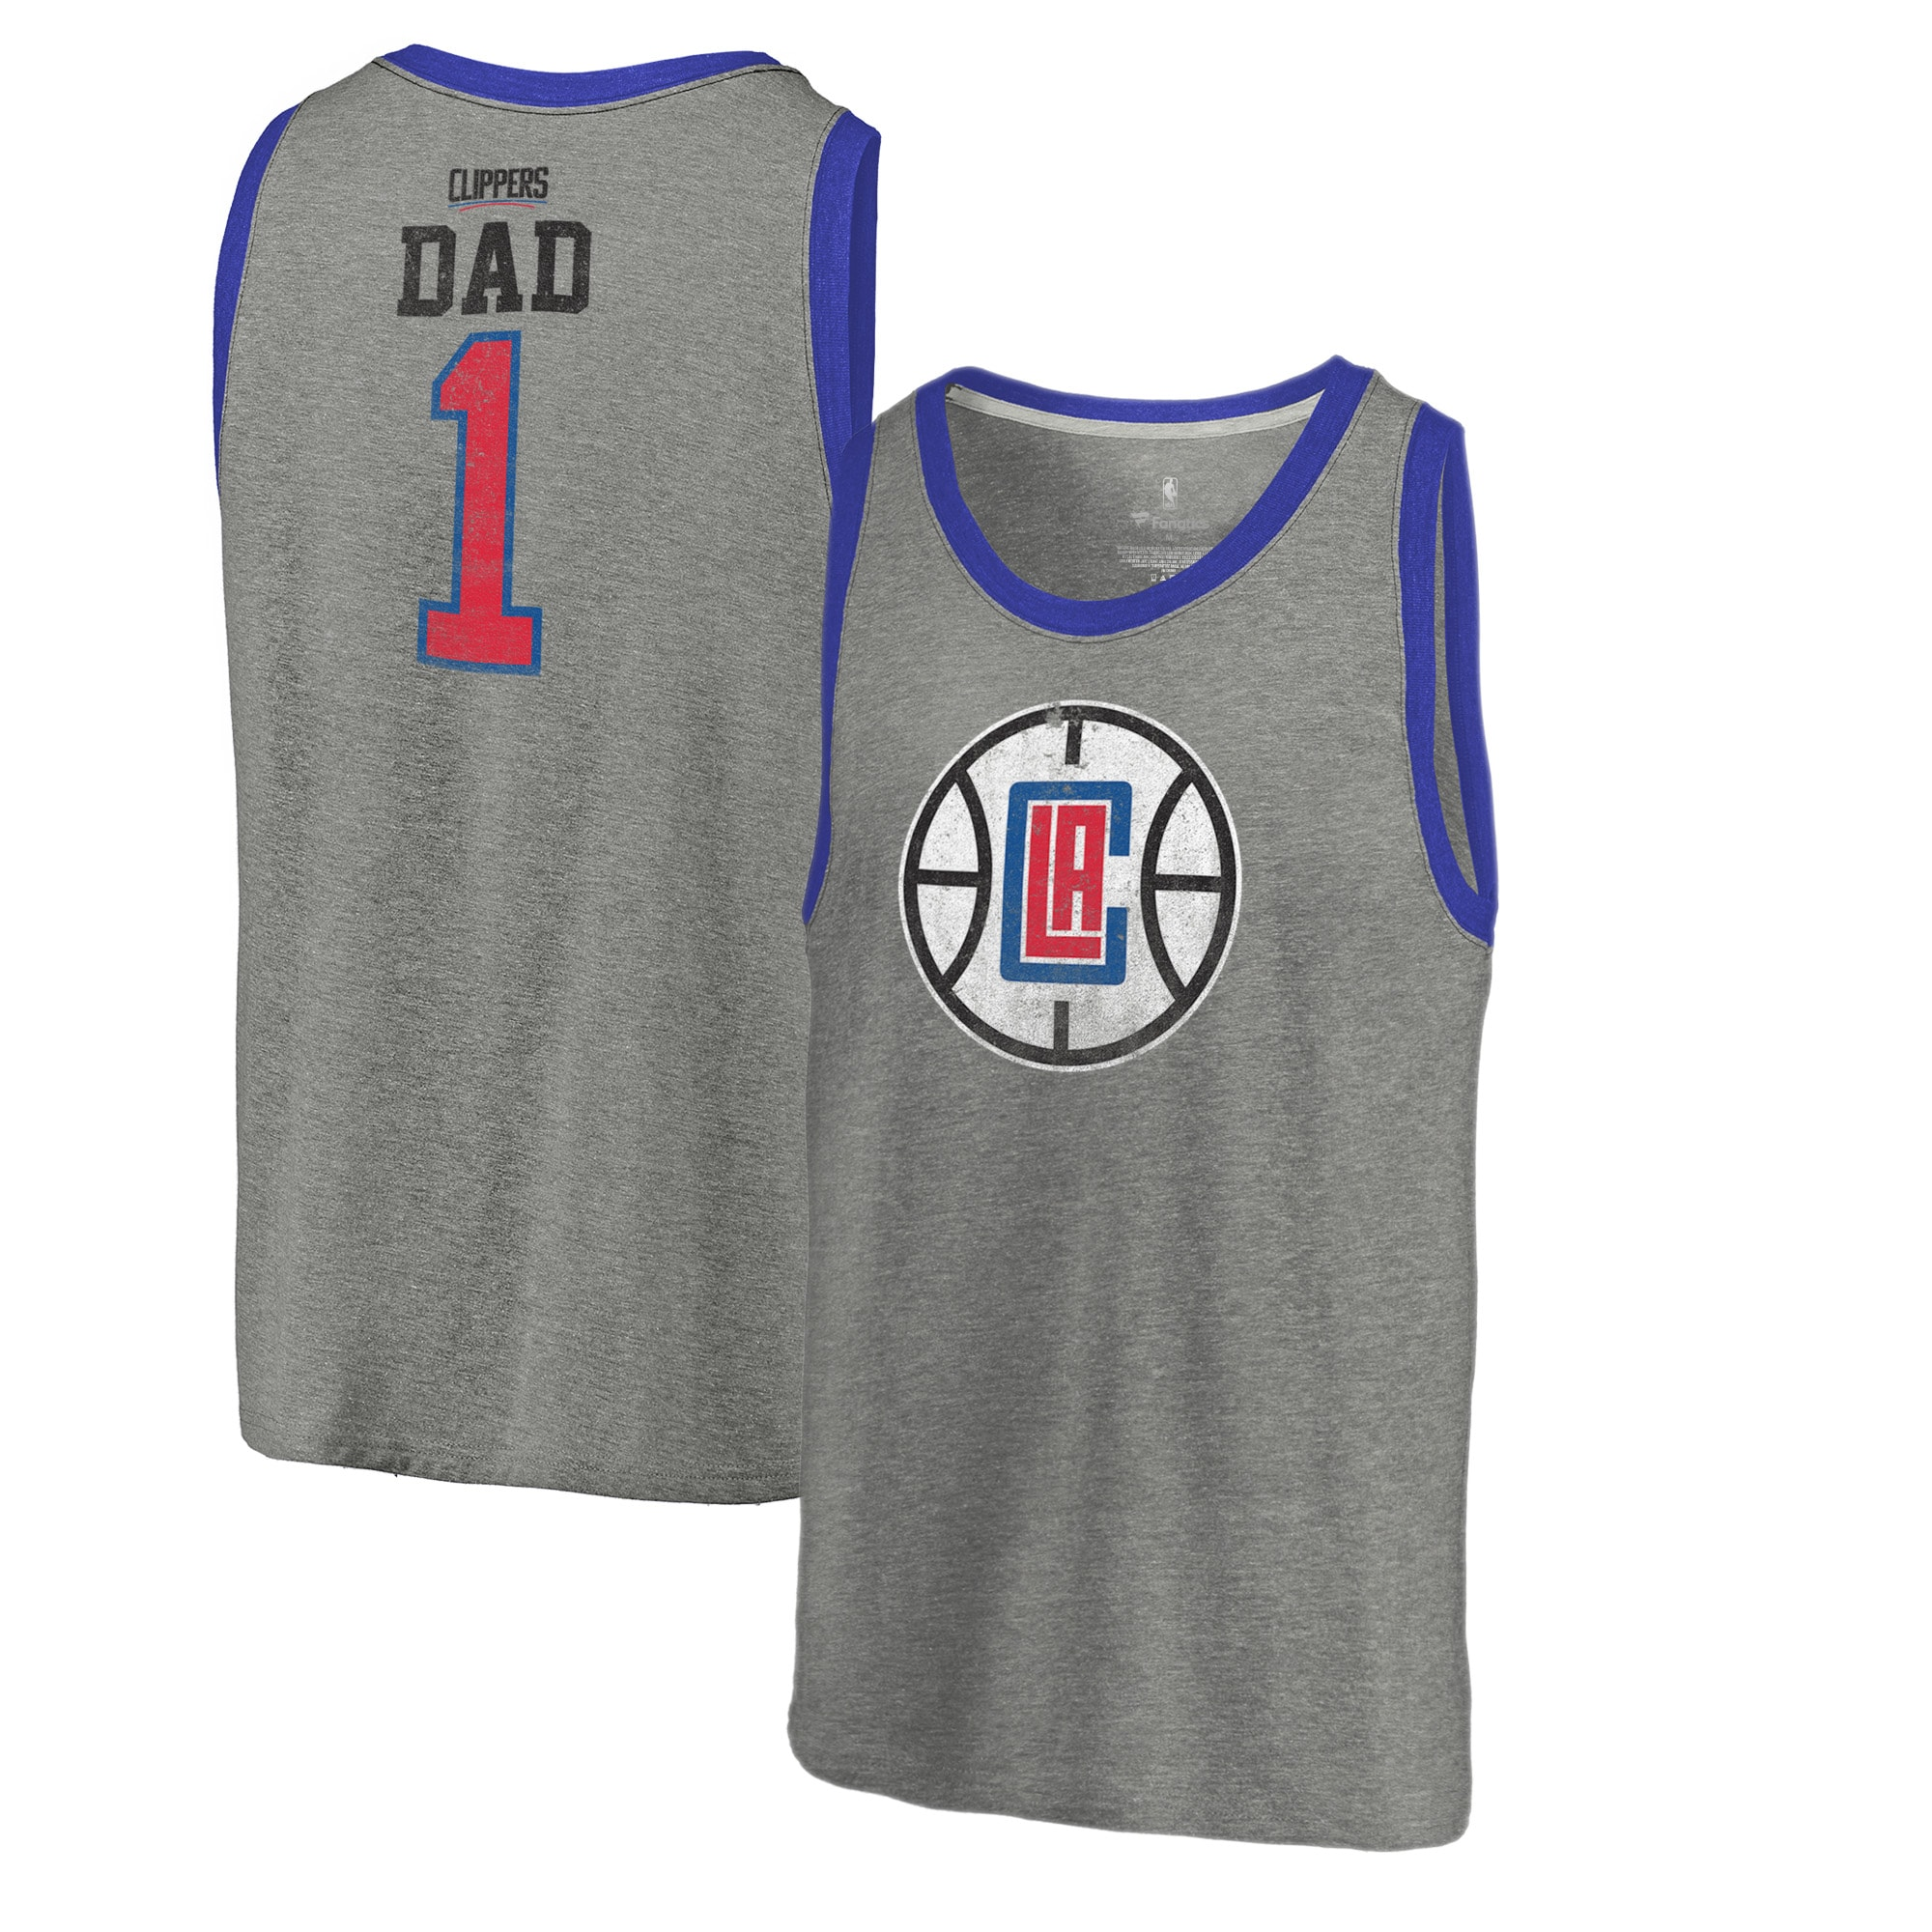 LA Clippers Fanatics Branded Greatest Dad Tri-Blend Tank Top - Heathered Gray